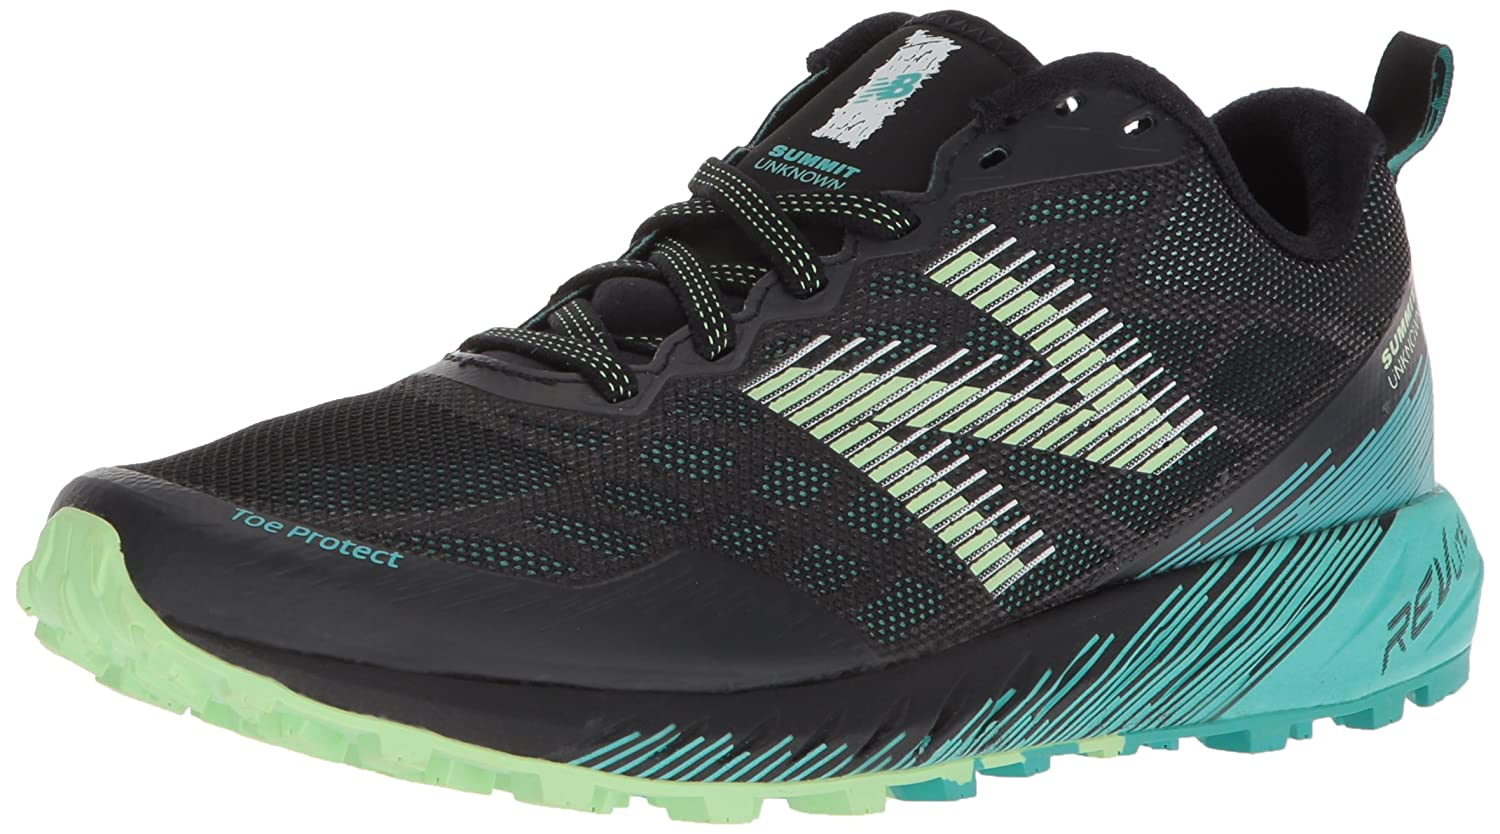 New Balance 19998 New Summit Unknown, B06XJ3YMC8 Running Femme Green/Black d39e009 - automaticcouplings.space